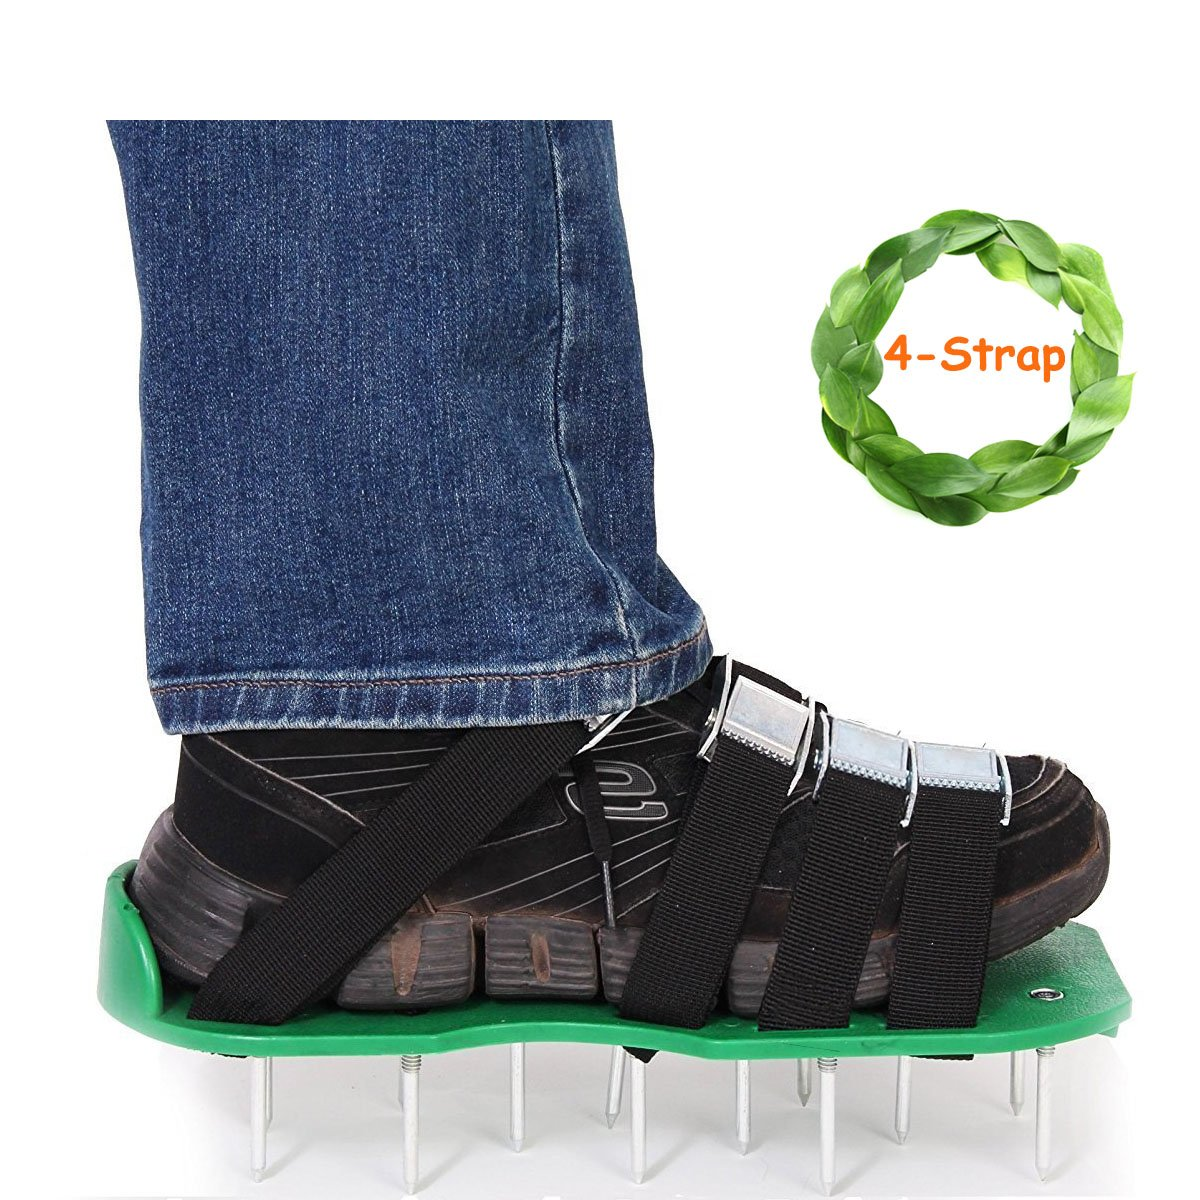 Kyerivs Lawn Aerator Spike Shoes Updated 4 Straps with Heavy Duty Buckles Lawn Aerator Sandals by, Universal Size with Bonus Wrench